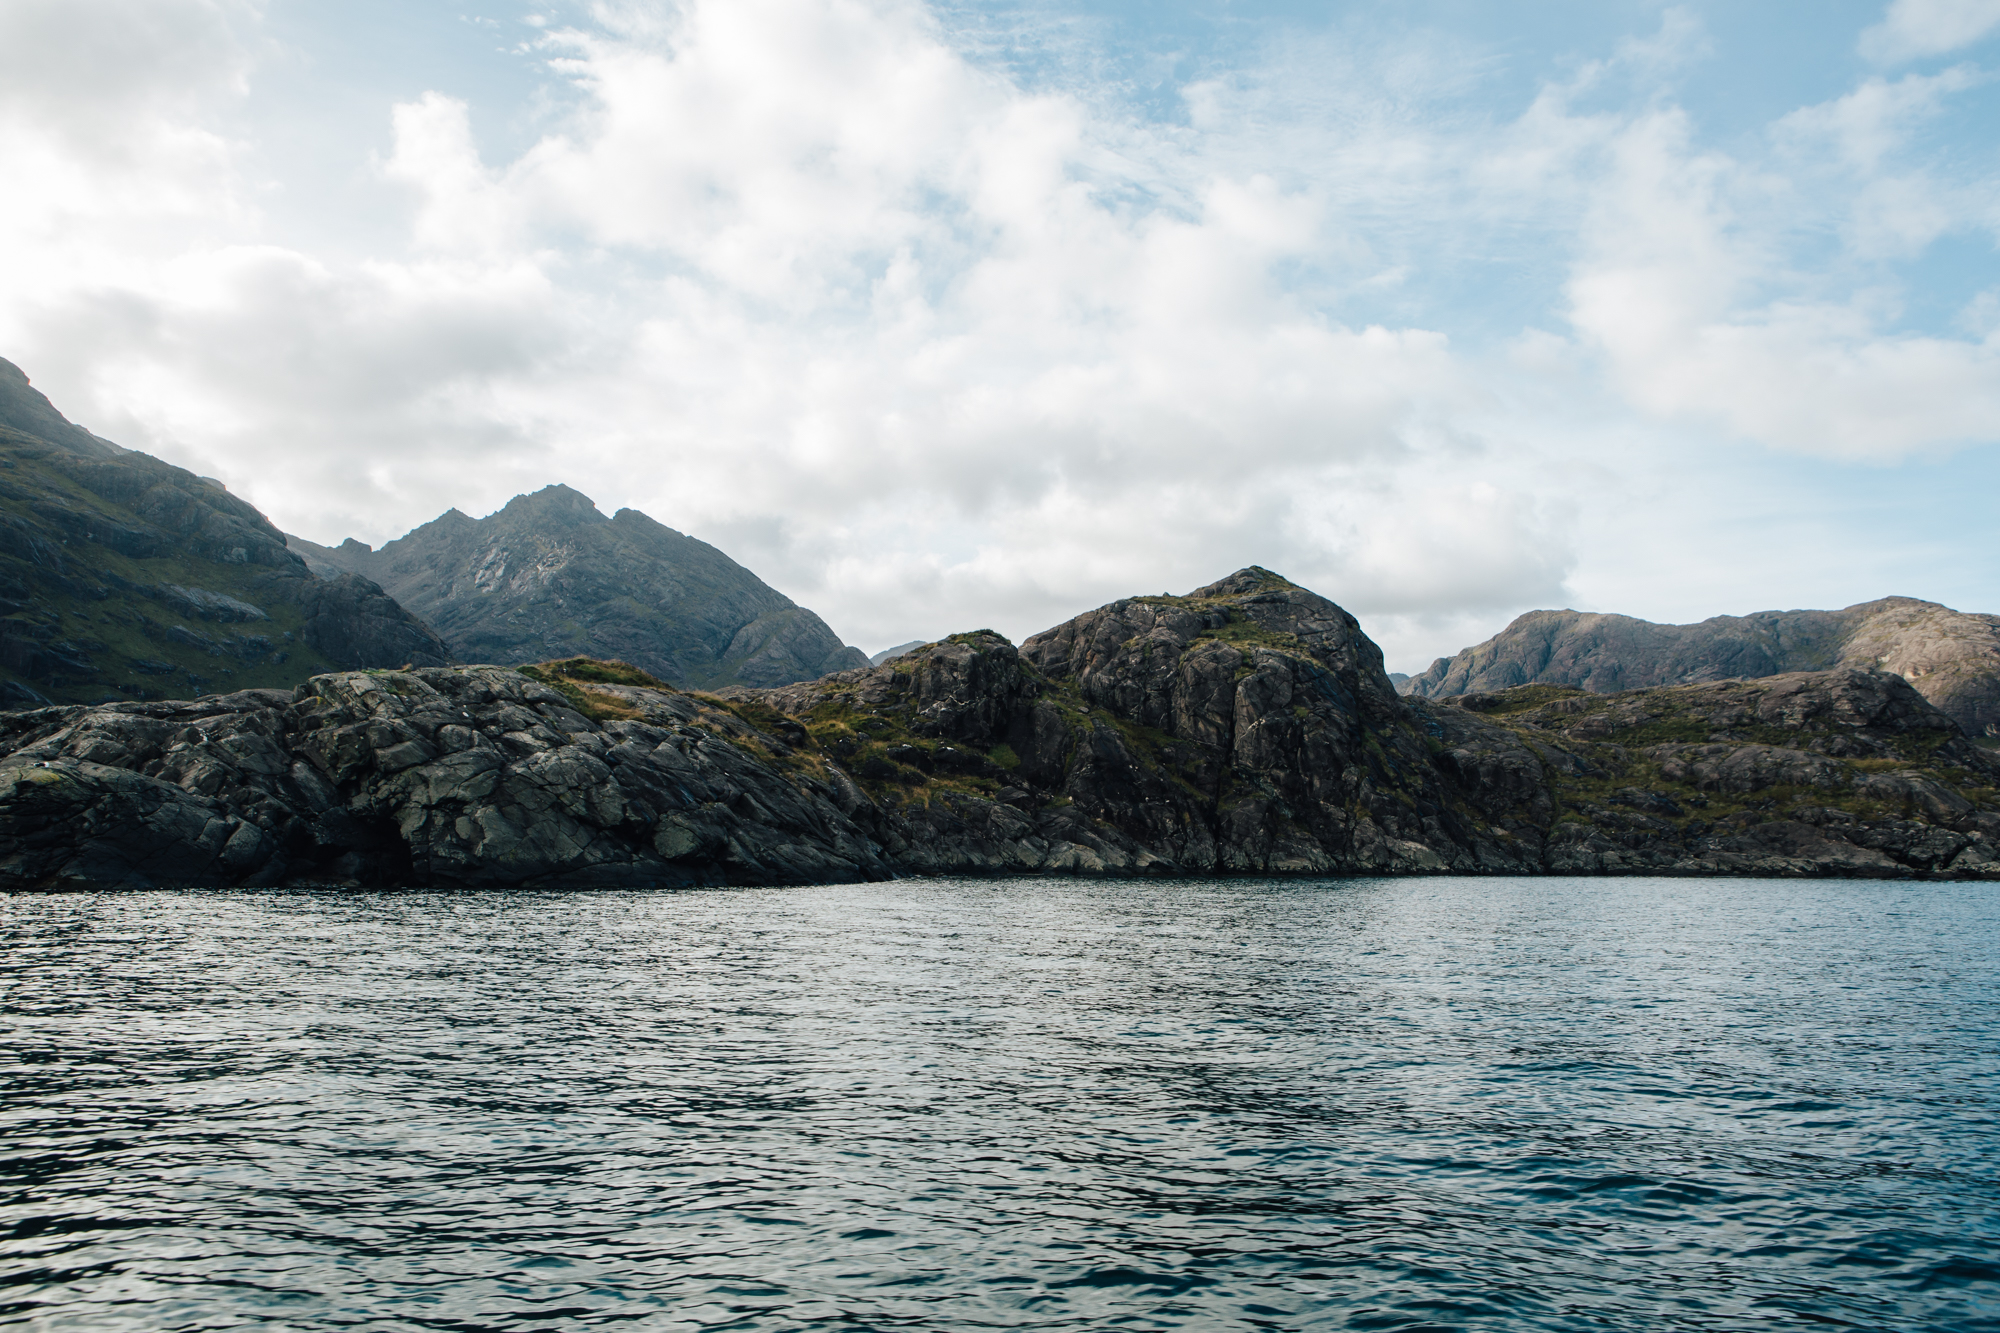 View from aboard Misty Isle boat , Sgurr na Stri behind